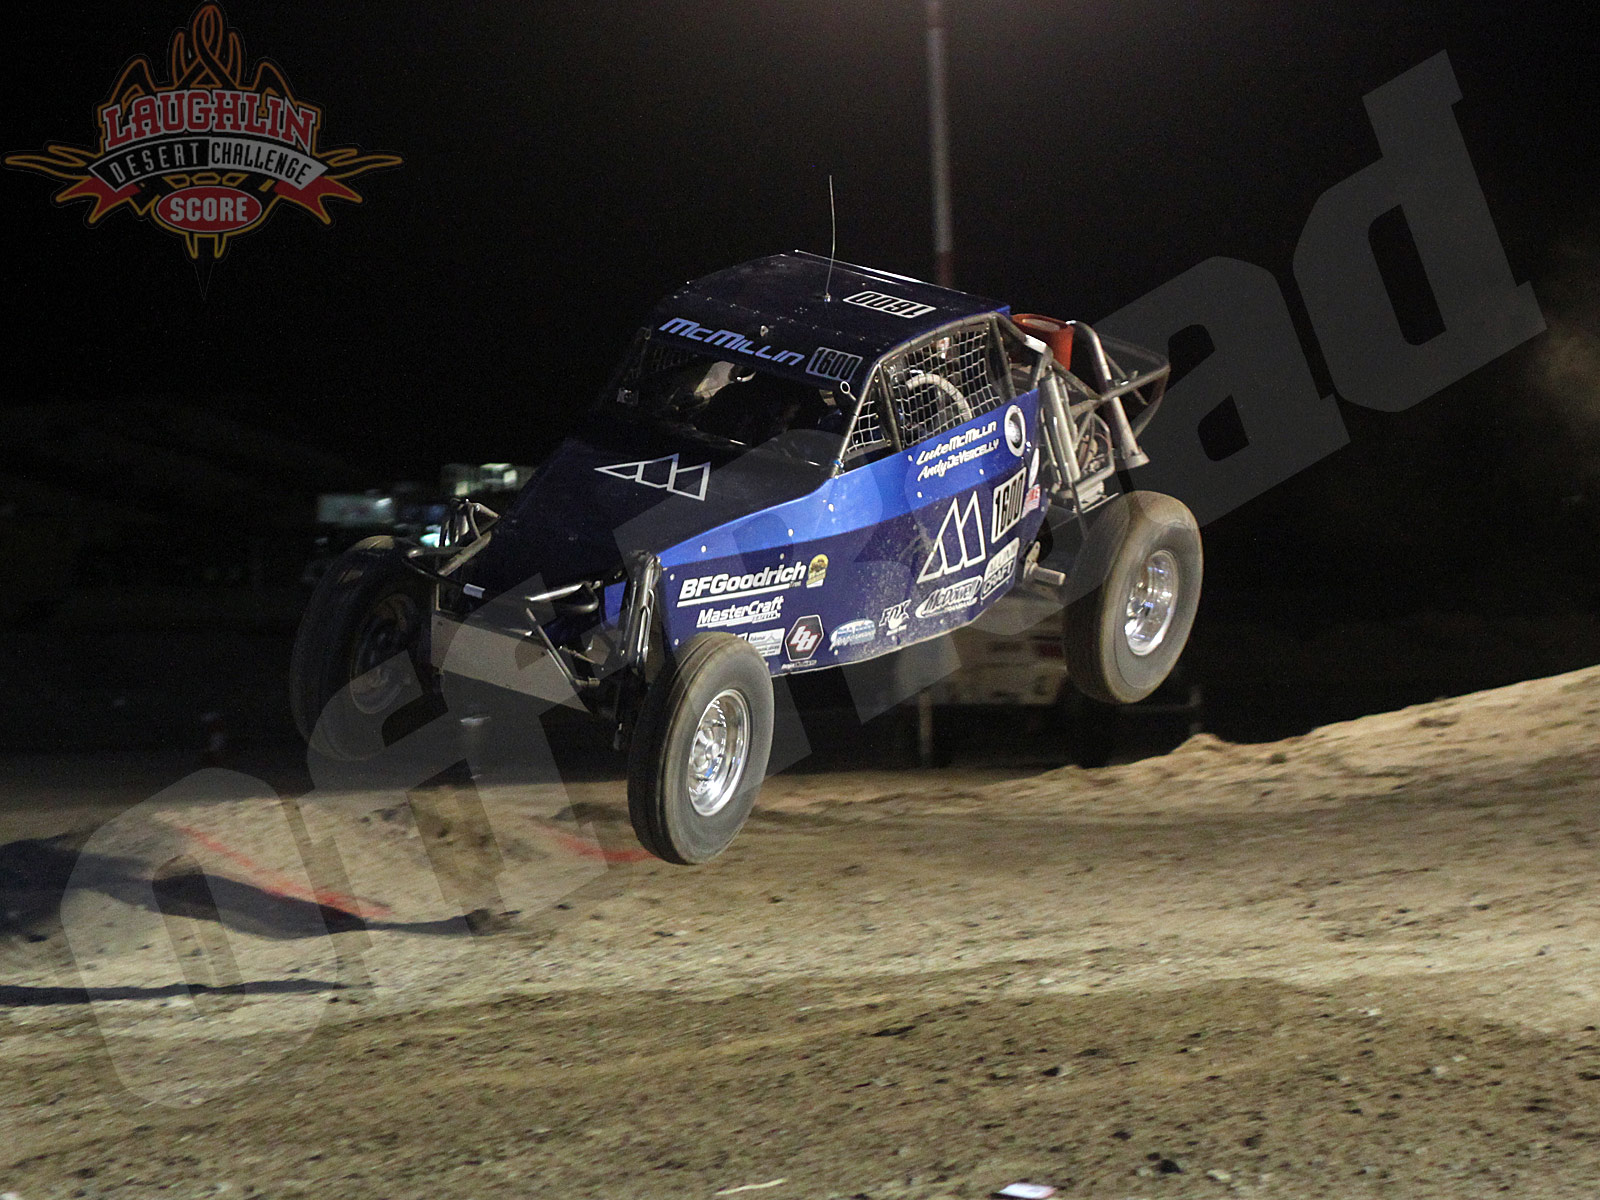 012611or 5190+2011 score laughlin desert challenge+laughlin leap